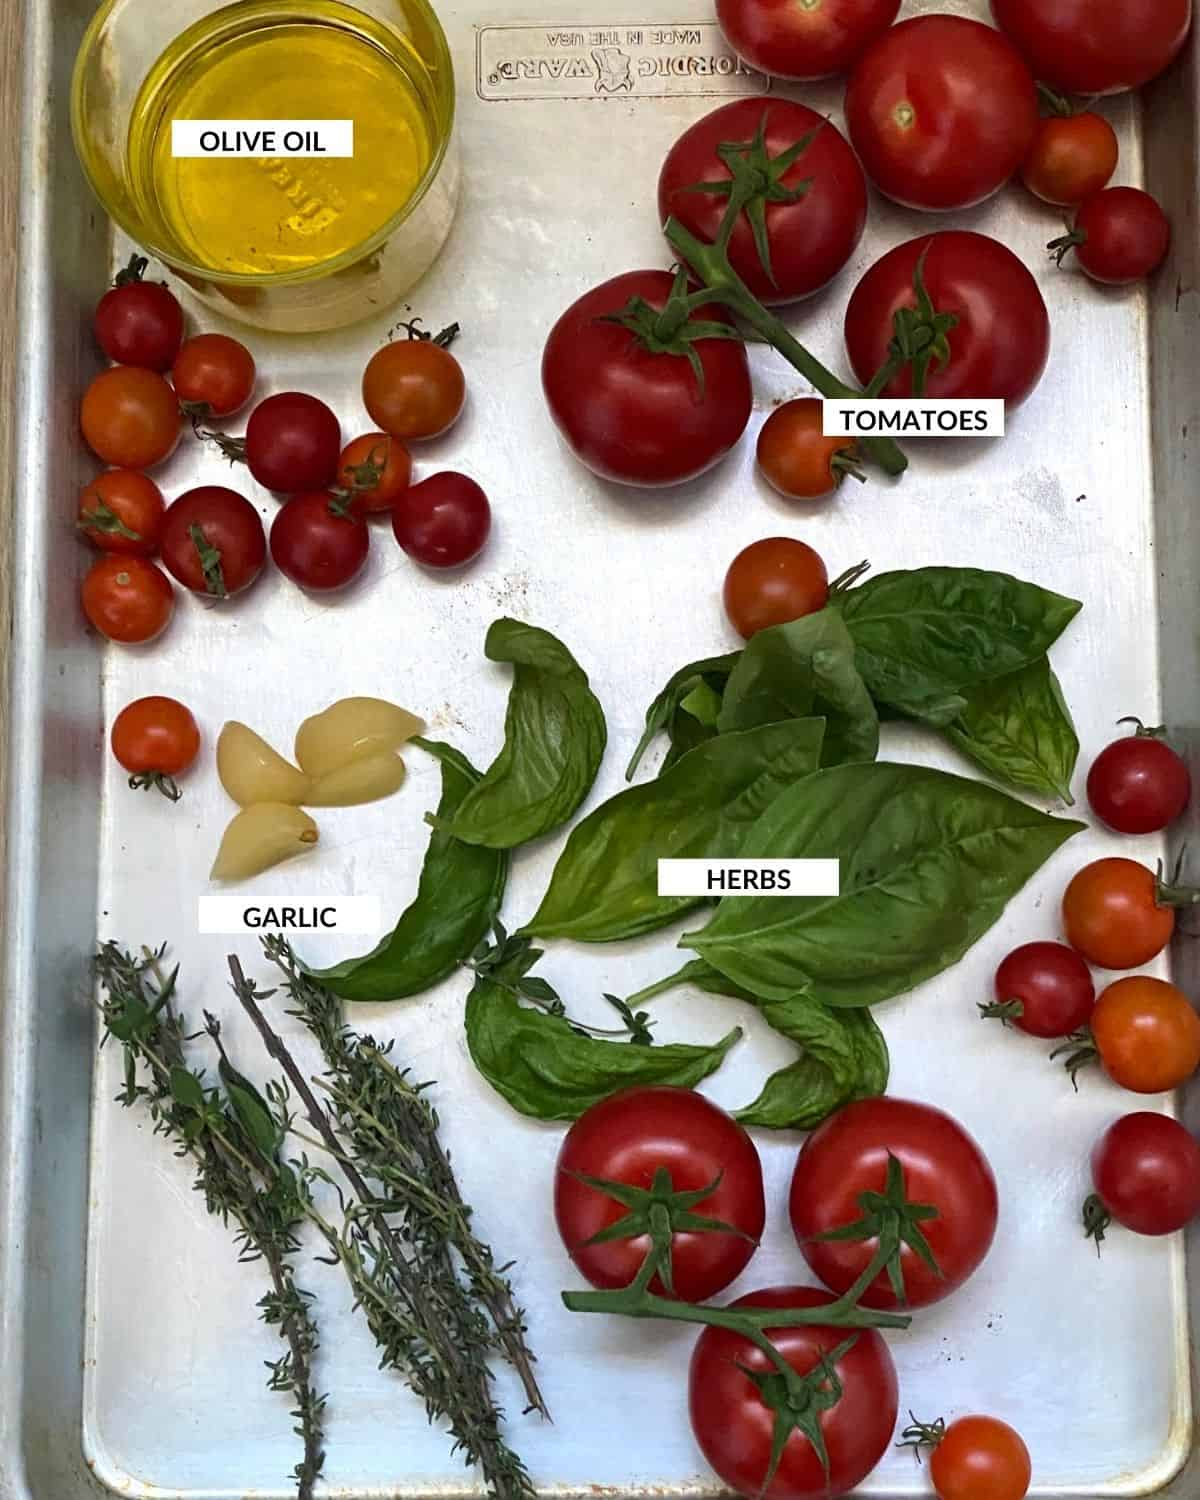 Labeled ingredient image showing what's needed to make tomato confit - check recipe card for details!